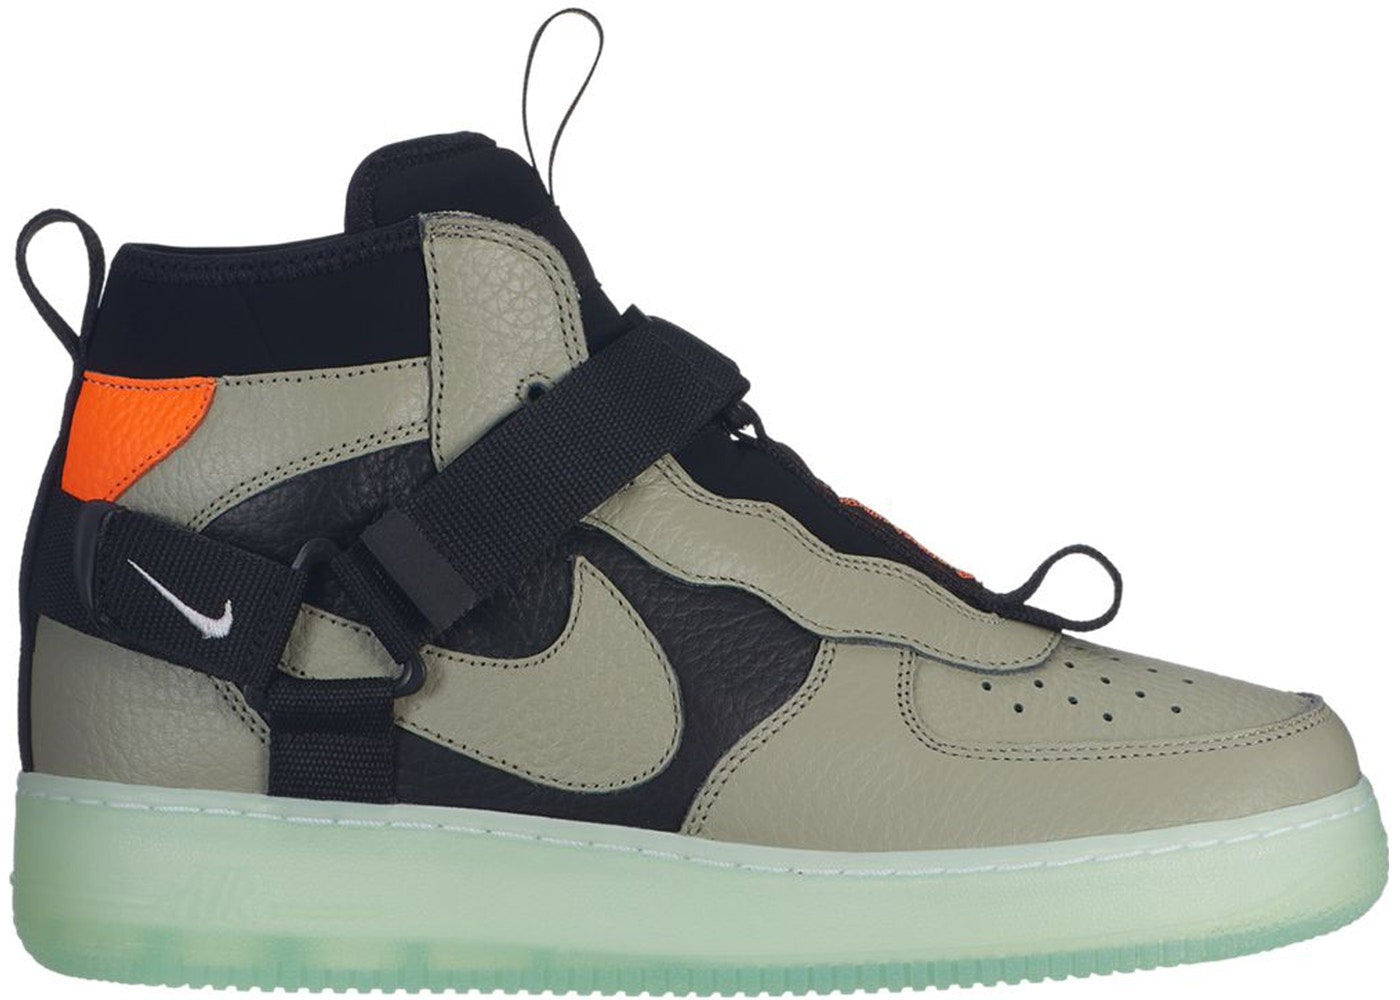 huge selection of 6d3a3 8df16 Details about Nike Air Force 1 Mid Utility Spruce Fog Frosted Spruce Total  Orange AQ9758-300